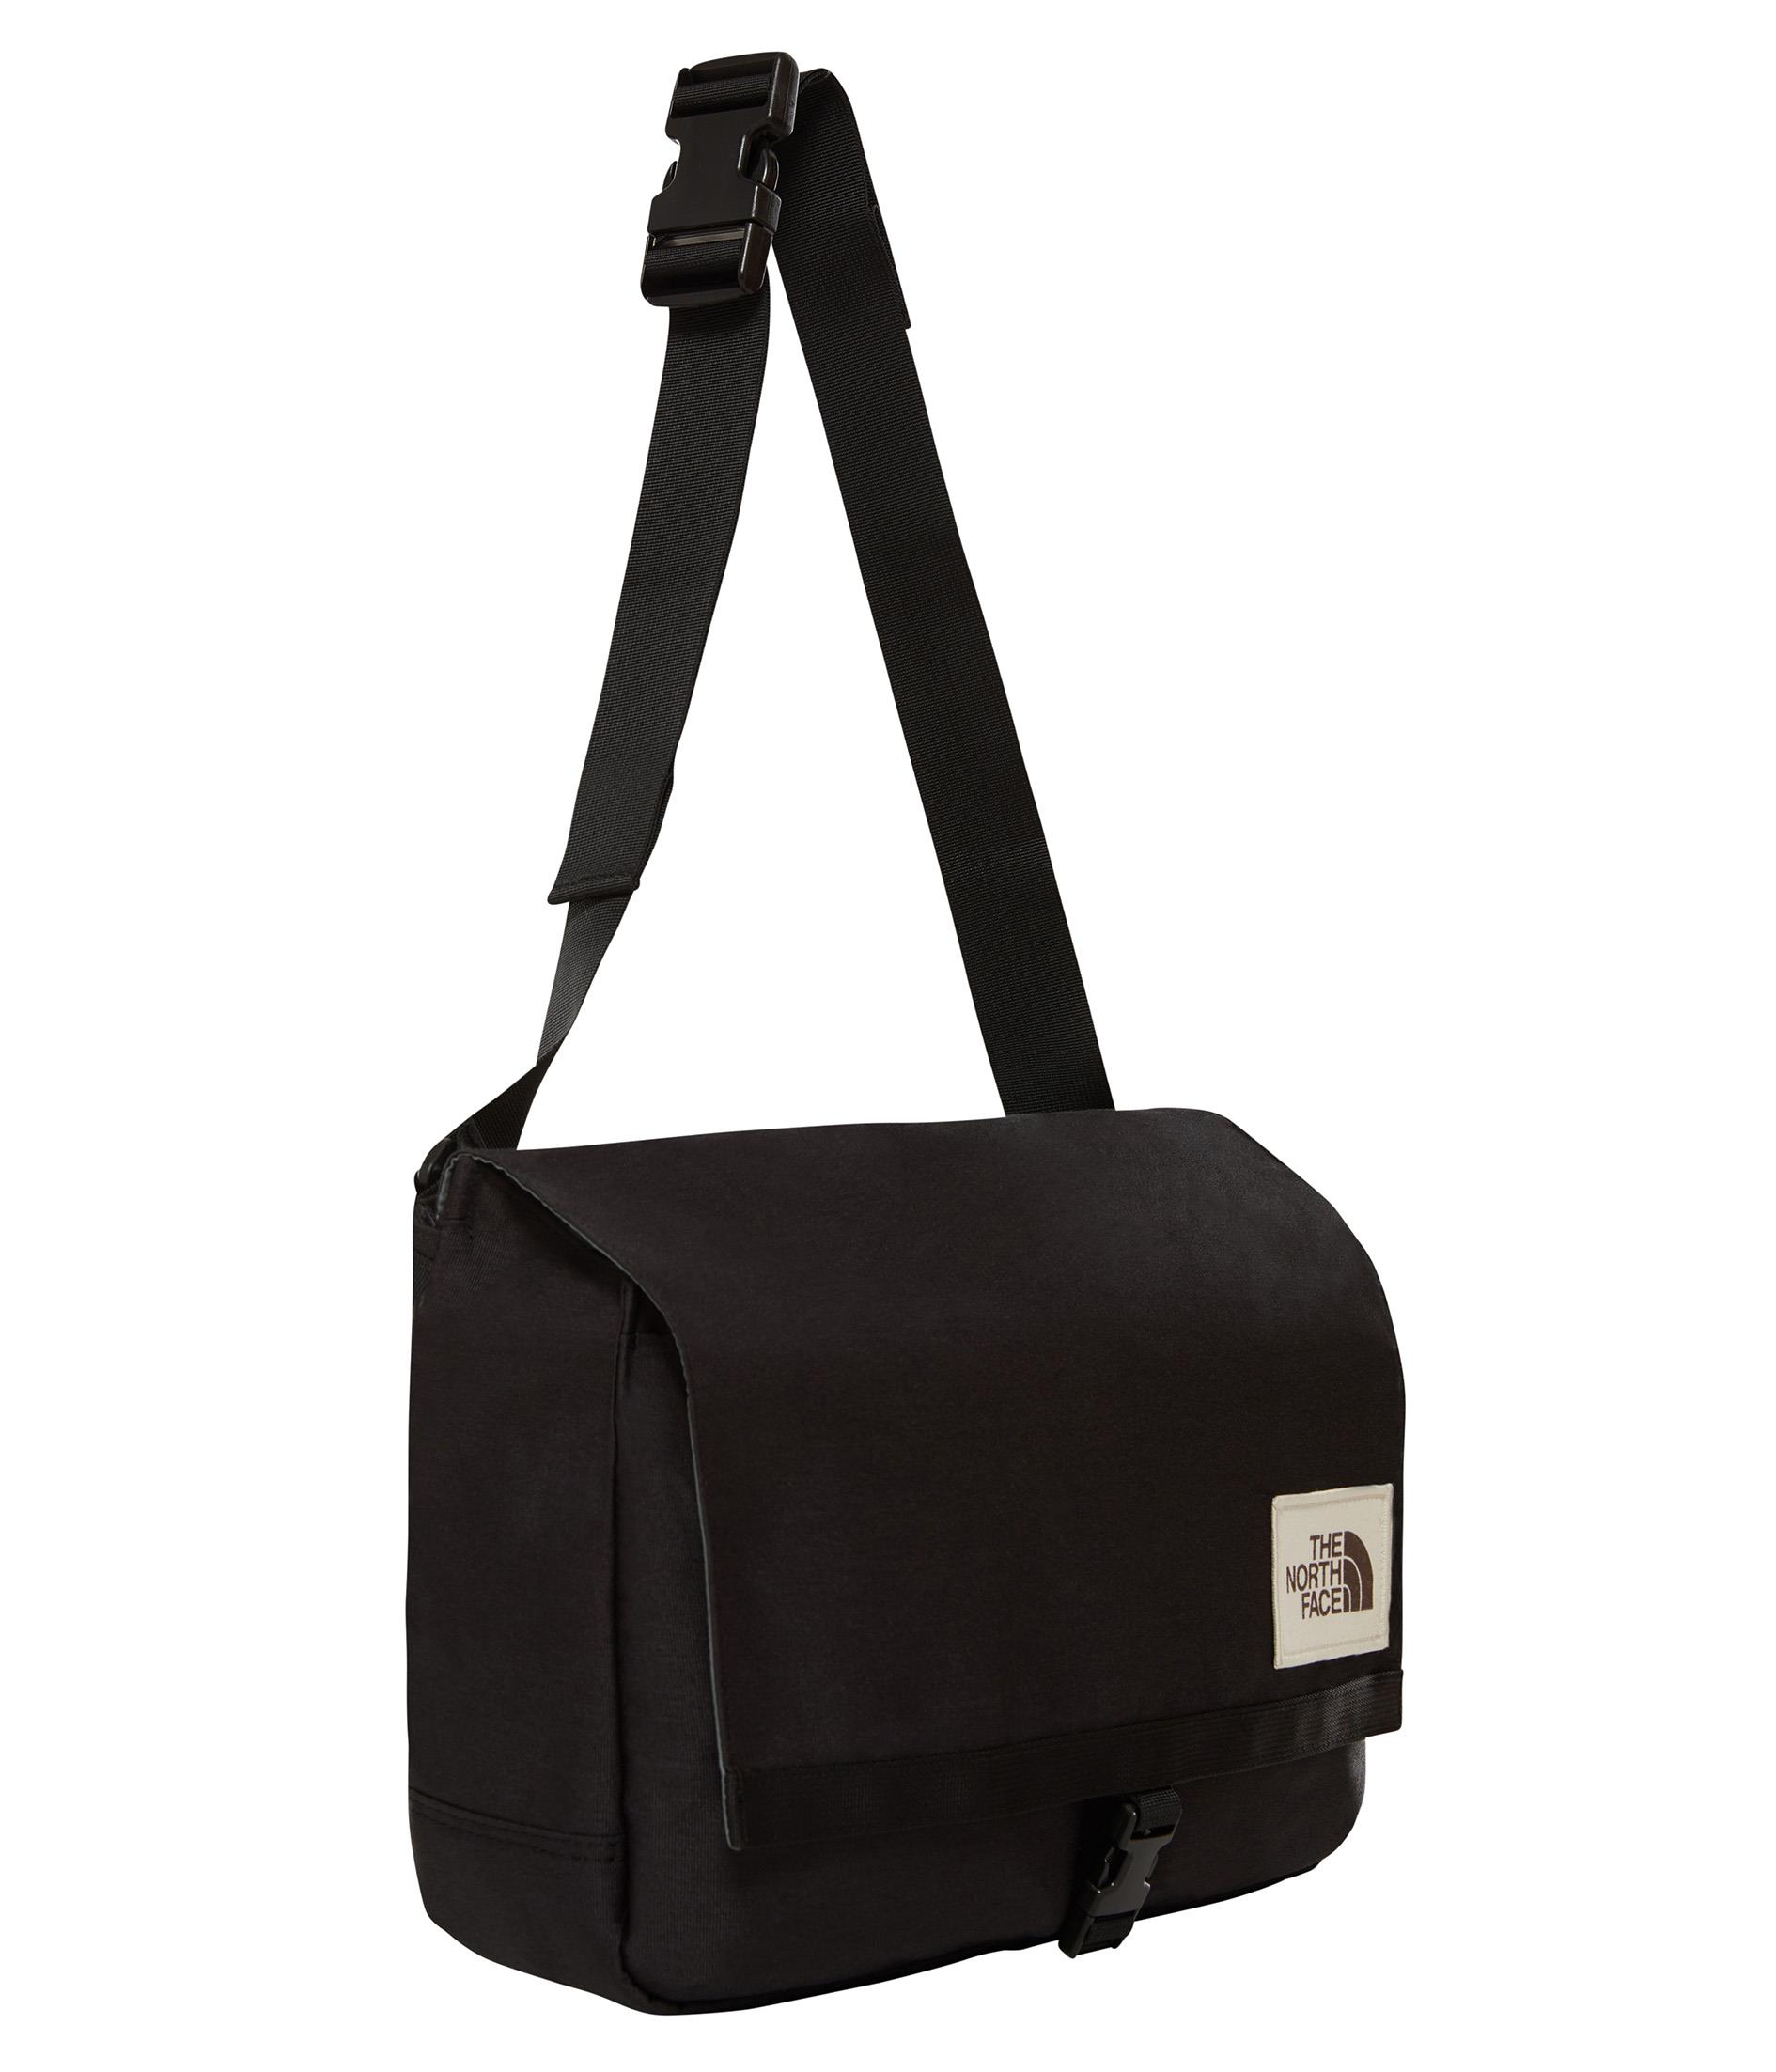 The Northface Berkeley Satchel T93Kwjks7 Çanta